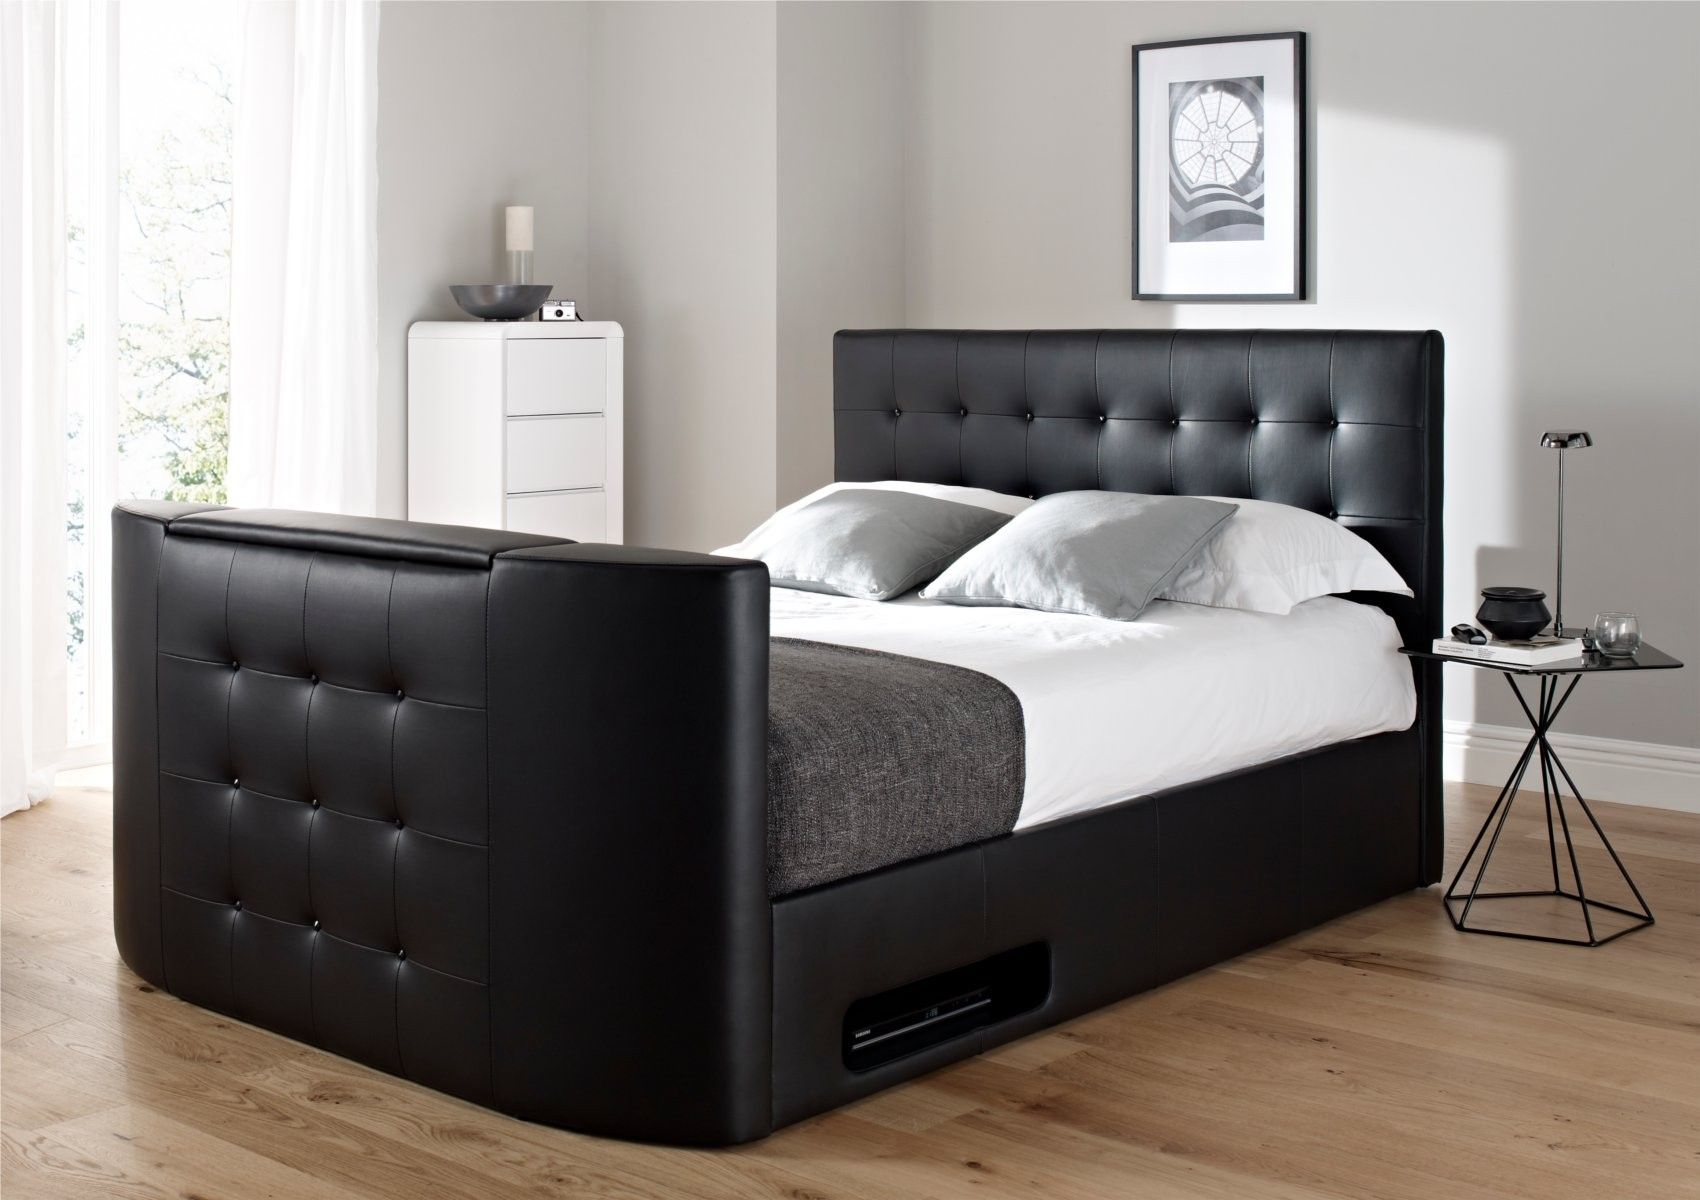 Superb Atlantis Leather Ottoman Tv Bed Black For In The Home Machost Co Dining Chair Design Ideas Machostcouk